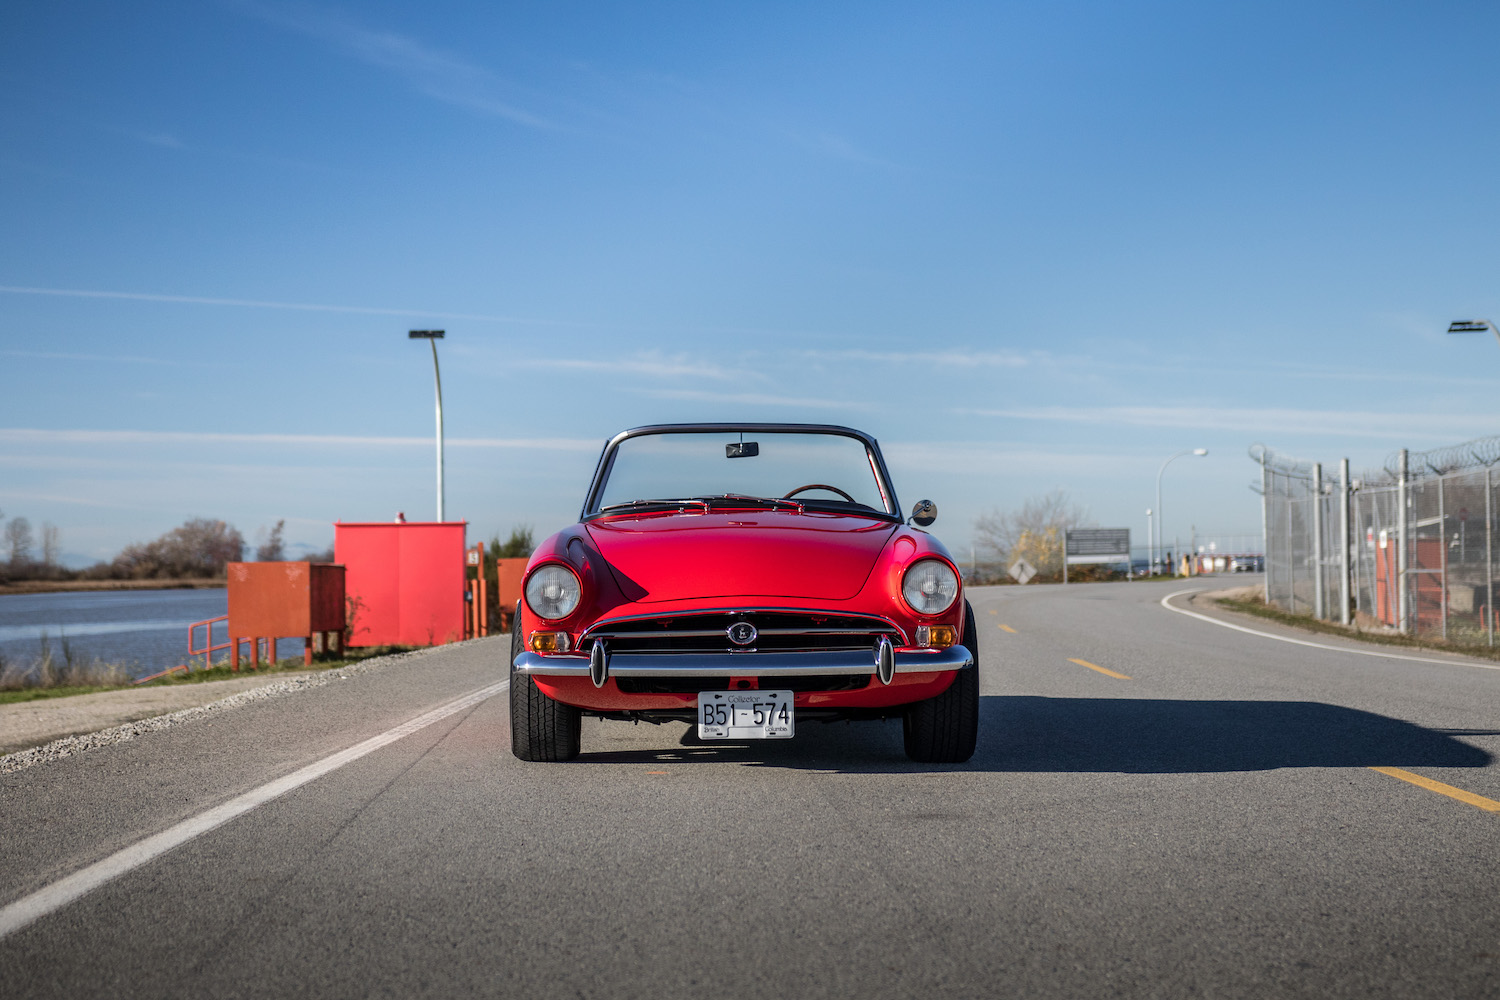 red sunbeam tiger front